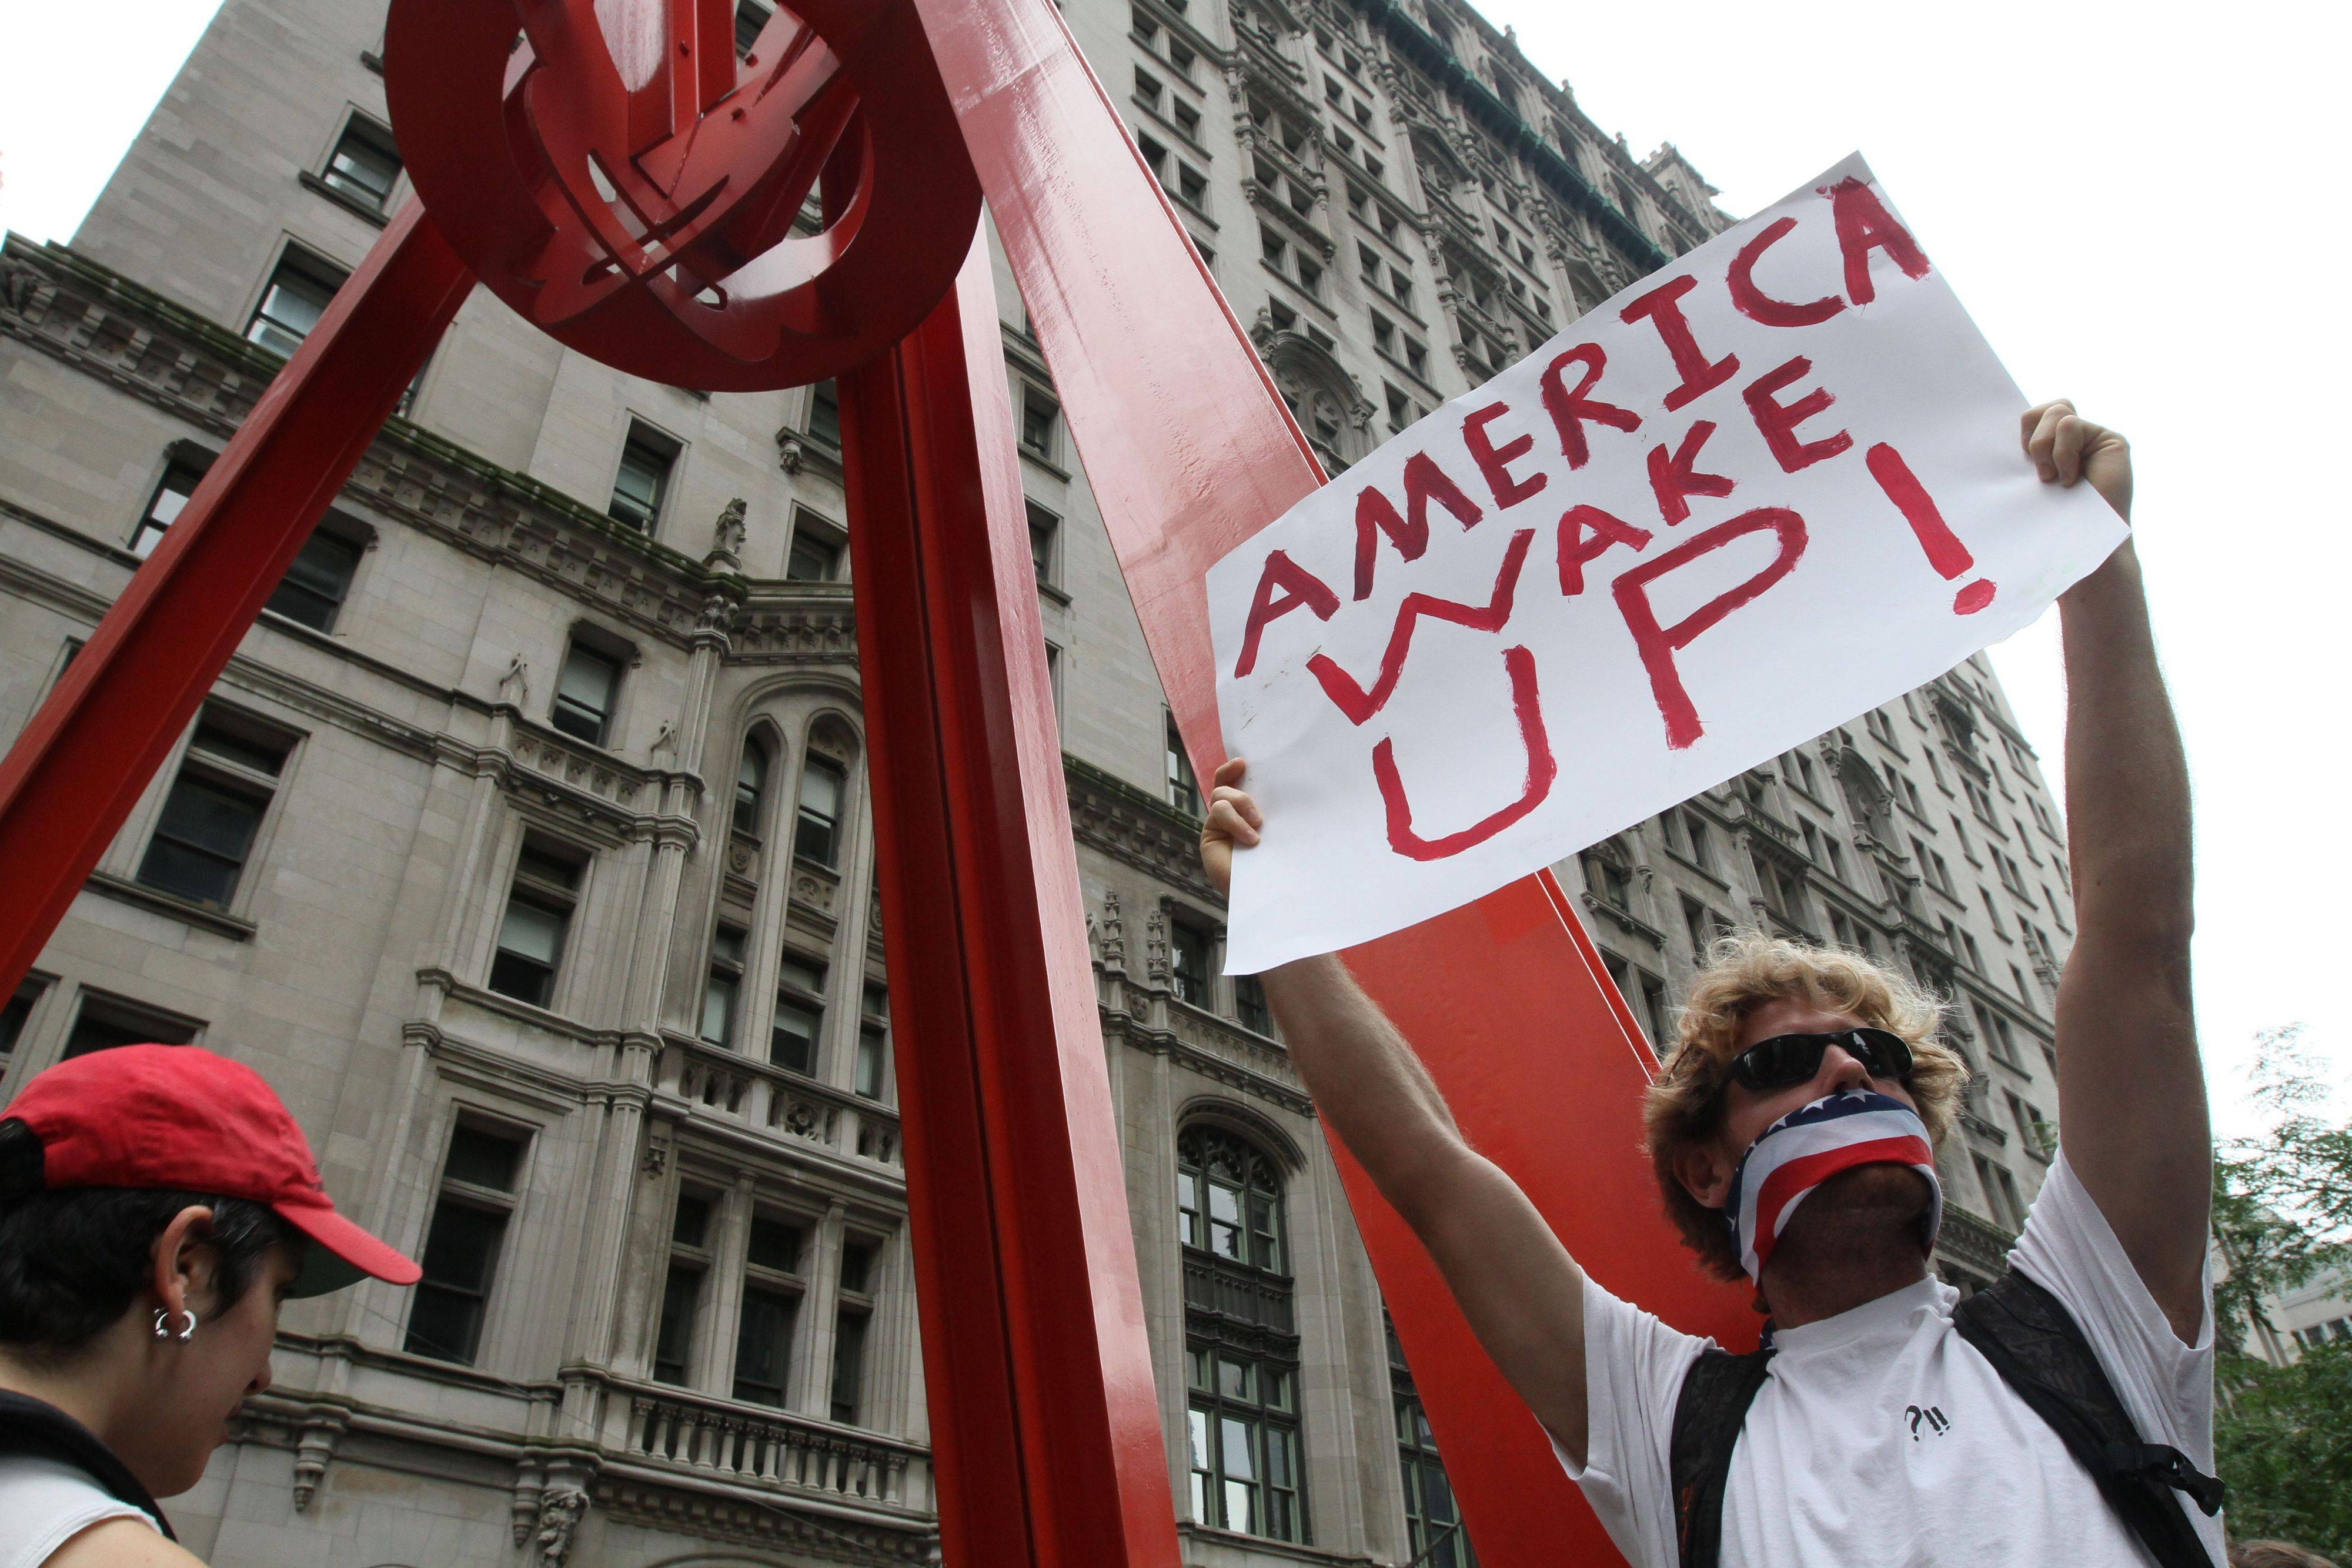 A participant in a march organized by Occupy Wall Street holds up a sign Saturday in New York. Marchers represented various causes both political and economic.